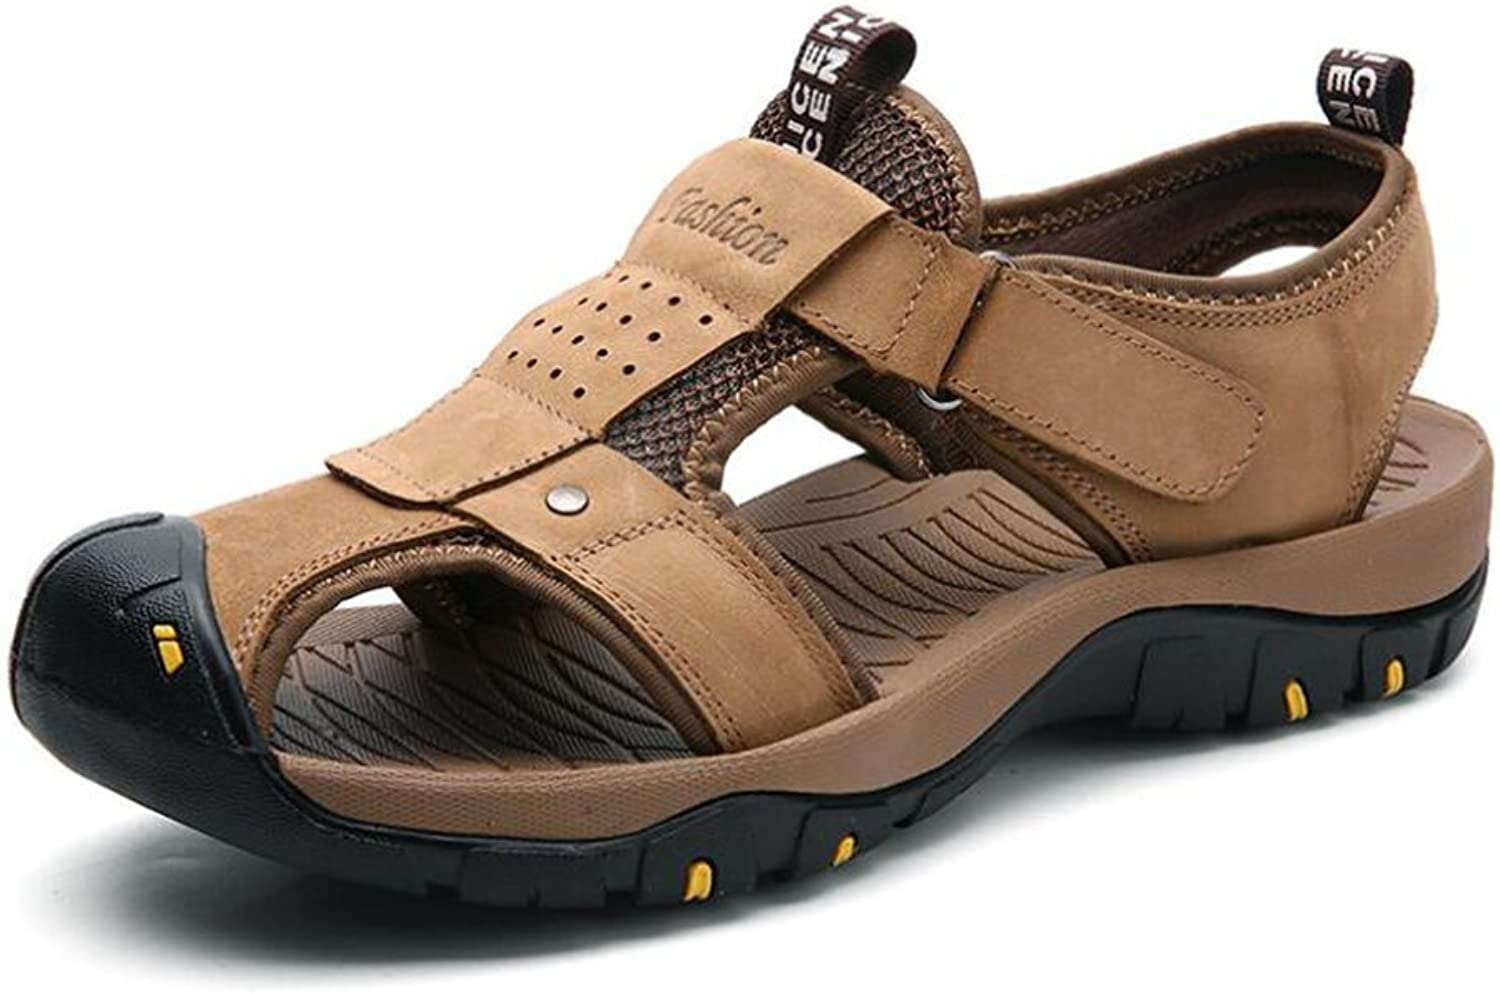 Mens Sandals - Durable Summer shoes, Comfort & Leather Beach shoes - For Spring Travel, Walking (color   B, Size   40)